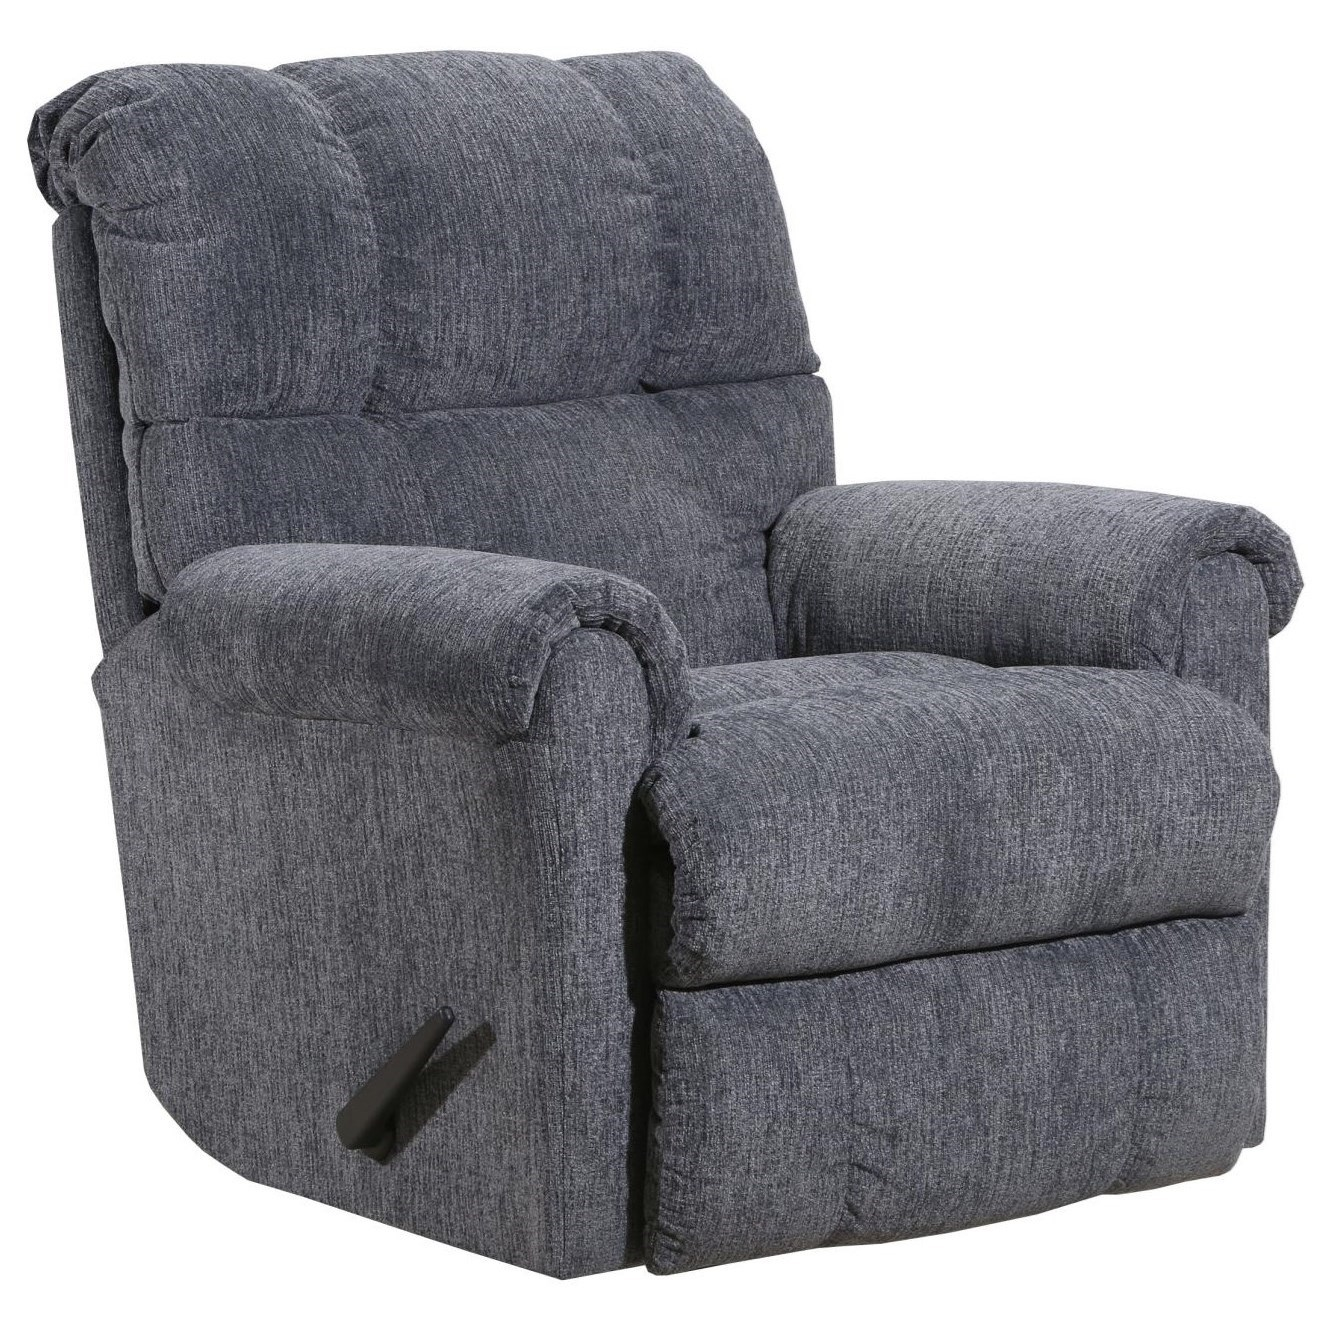 Avenger Glider Recliner with Heat and Massage by Lane at Powell's Furniture and Mattress